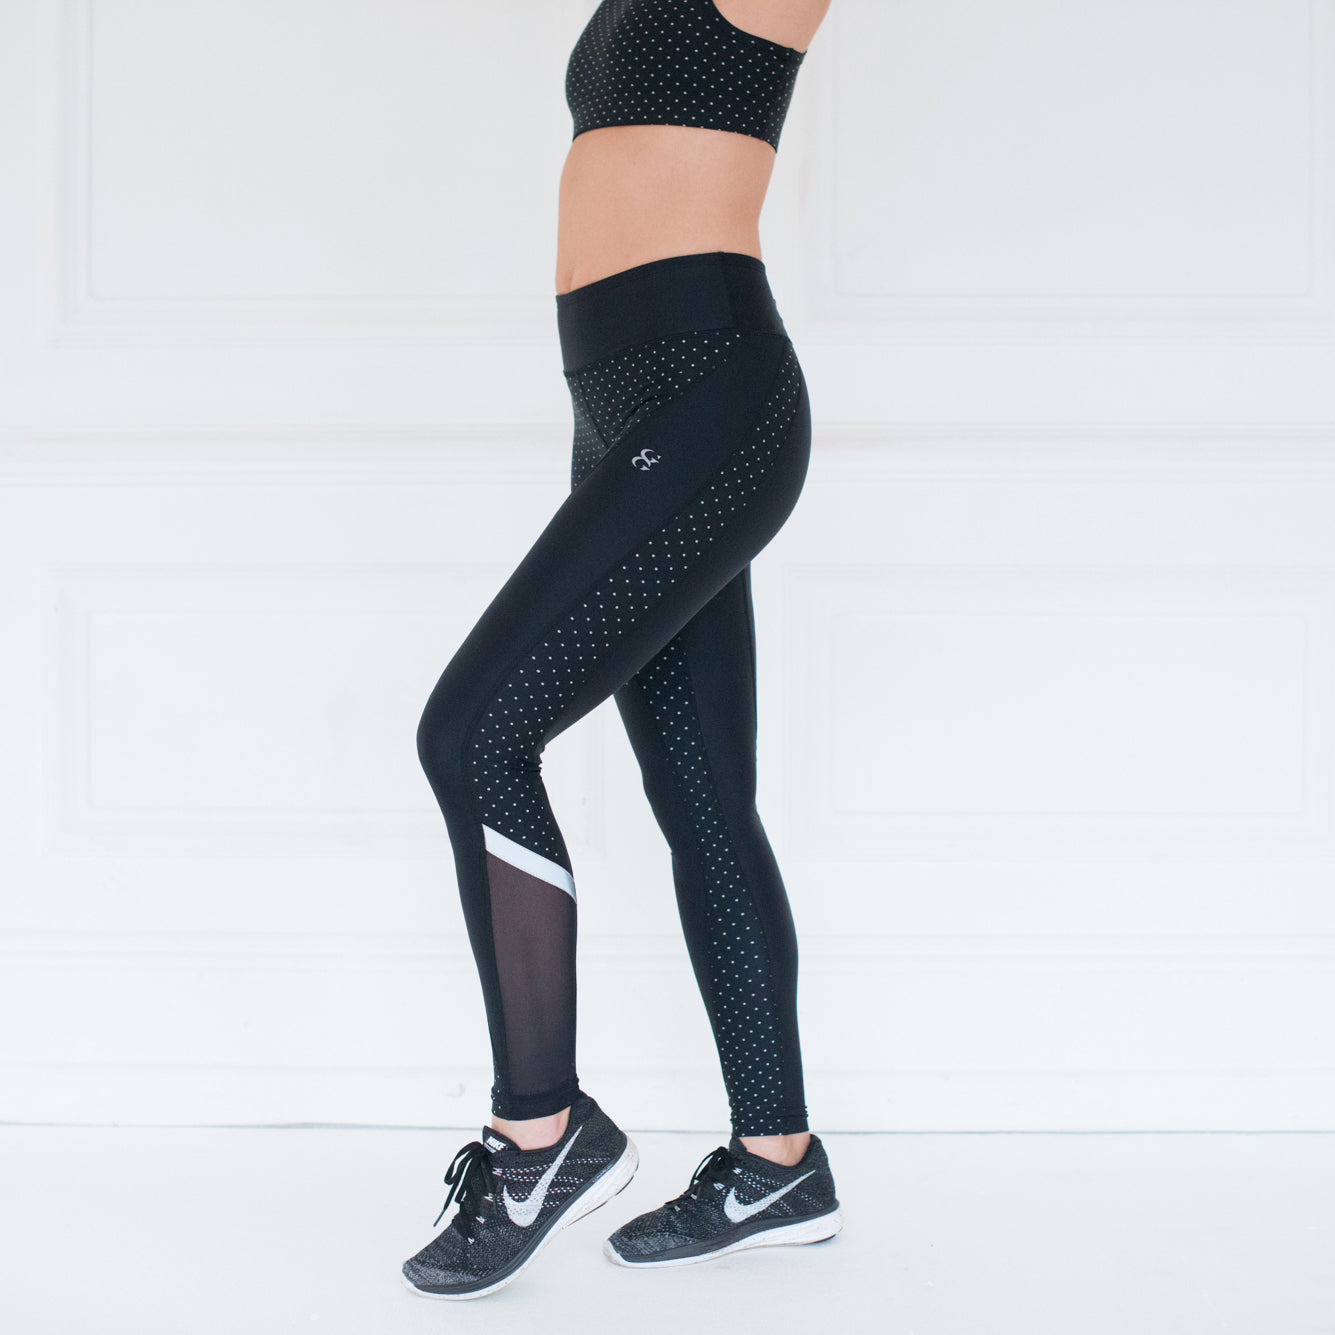 Super Flattering Gym Leggings